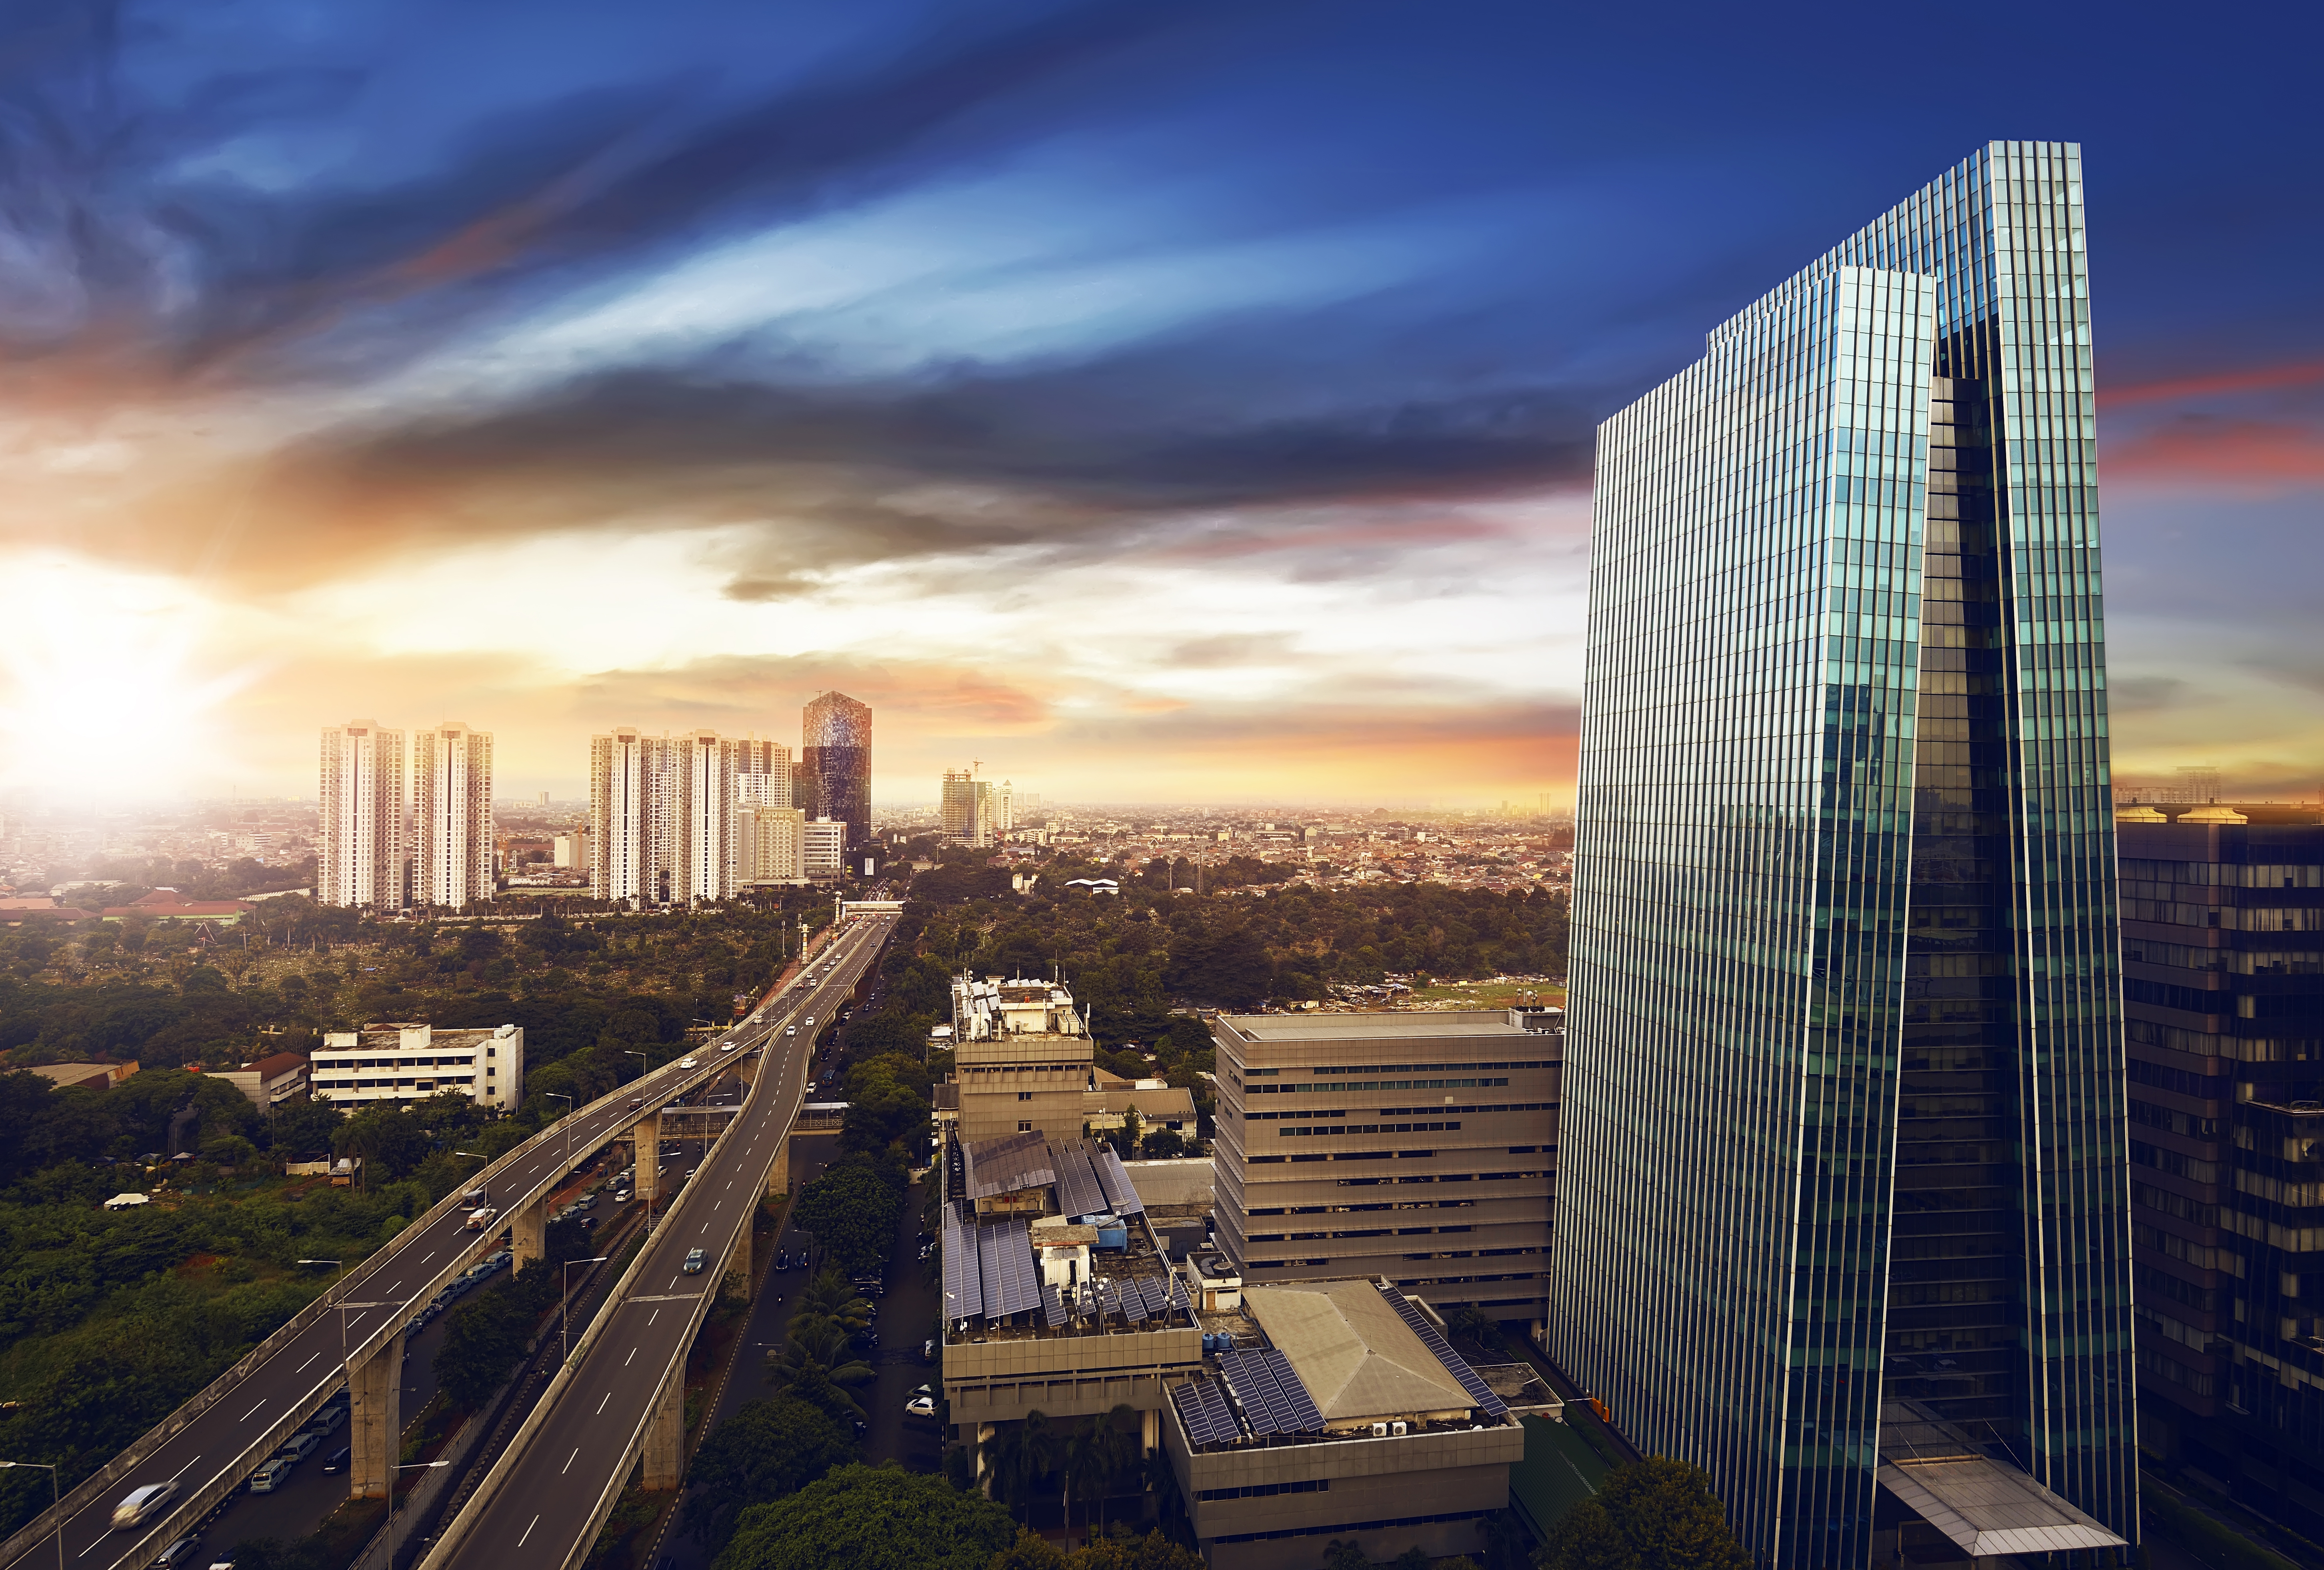 Telkom DWS and Its Vision to Transform Indonesia into A Global Digital Hub